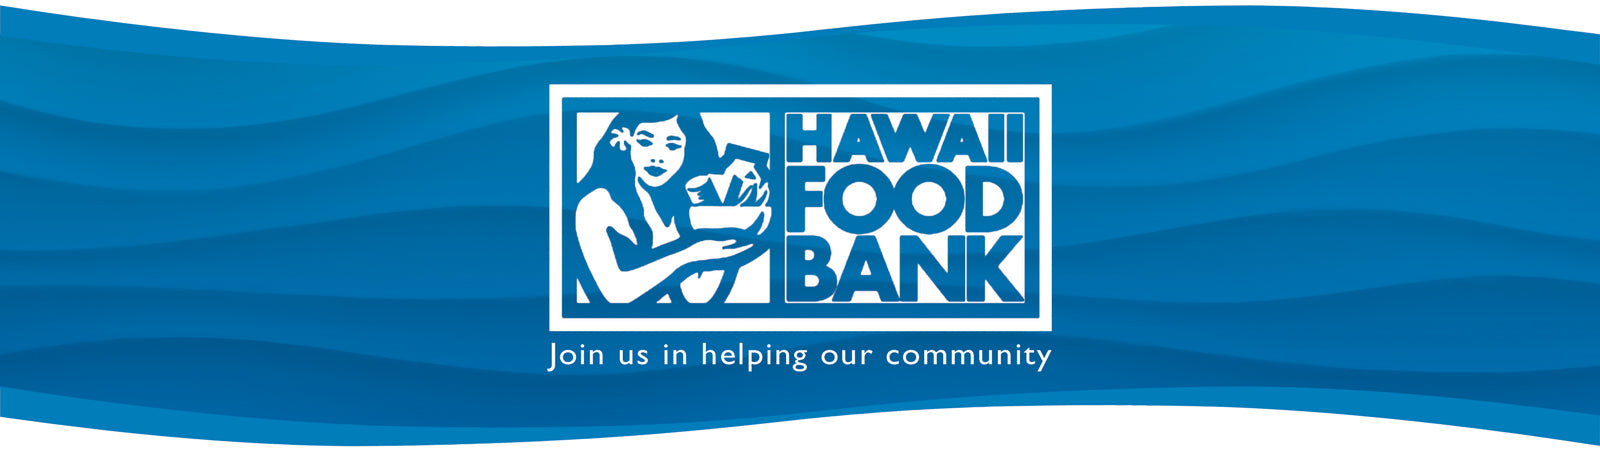 Hawaii Foodbank Donation